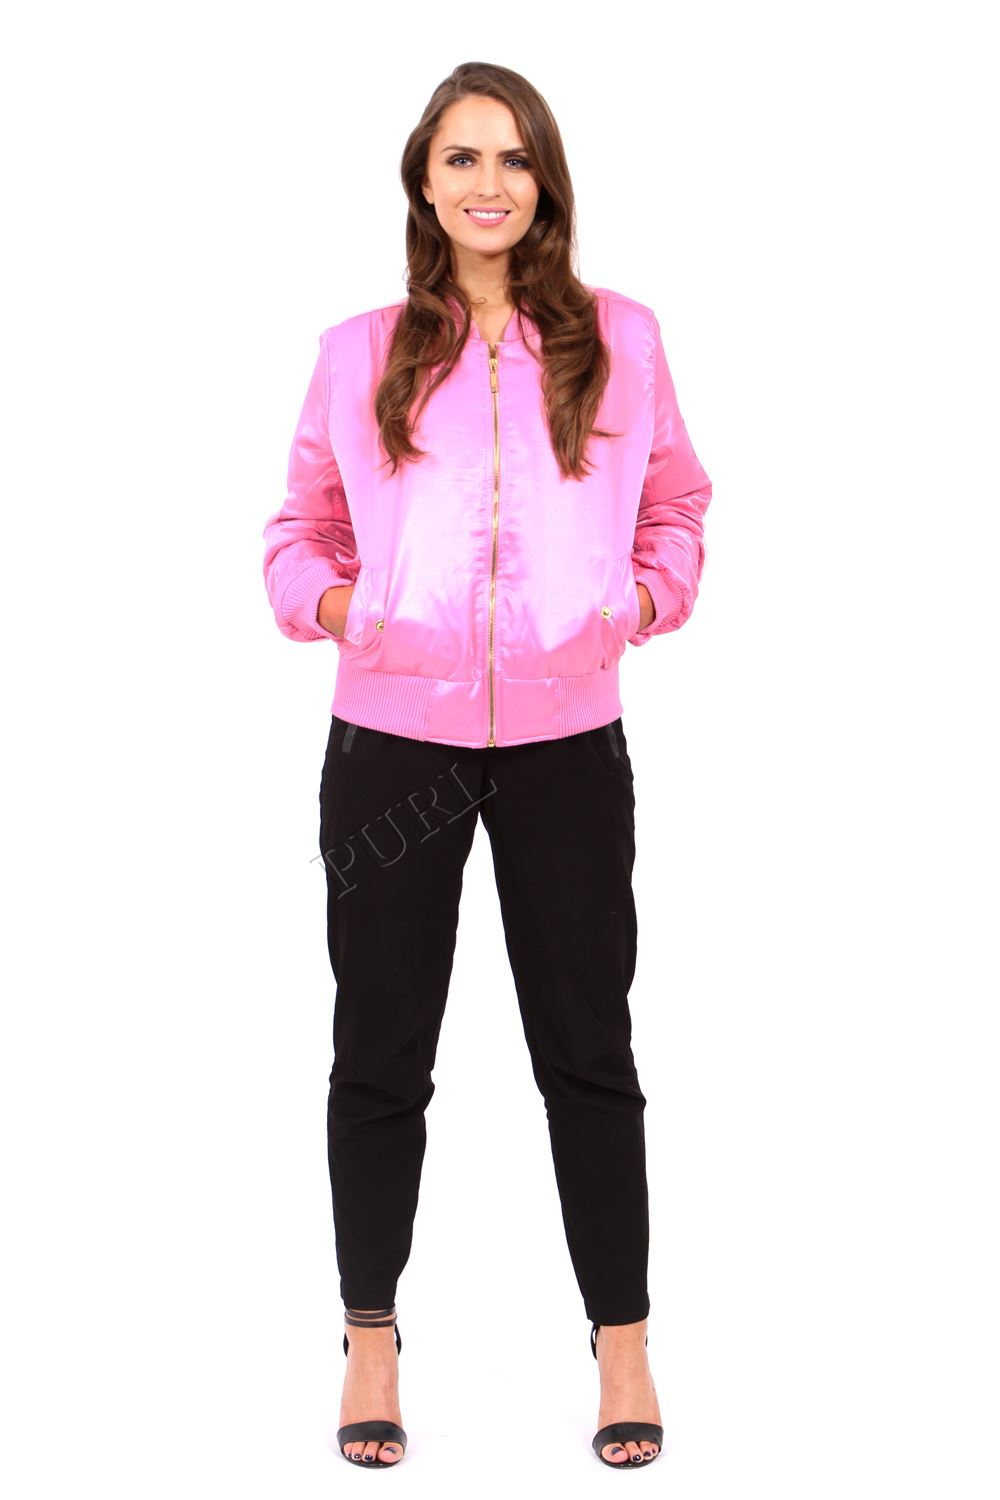 Shop for pink plus size jackets & coats and other women's plus size apparel products at more. Browse our women's plus size apparel selections and save today. To join them you'll need this Grease Plus Size Pink Ladies Jacket. Then you'll fit right in.